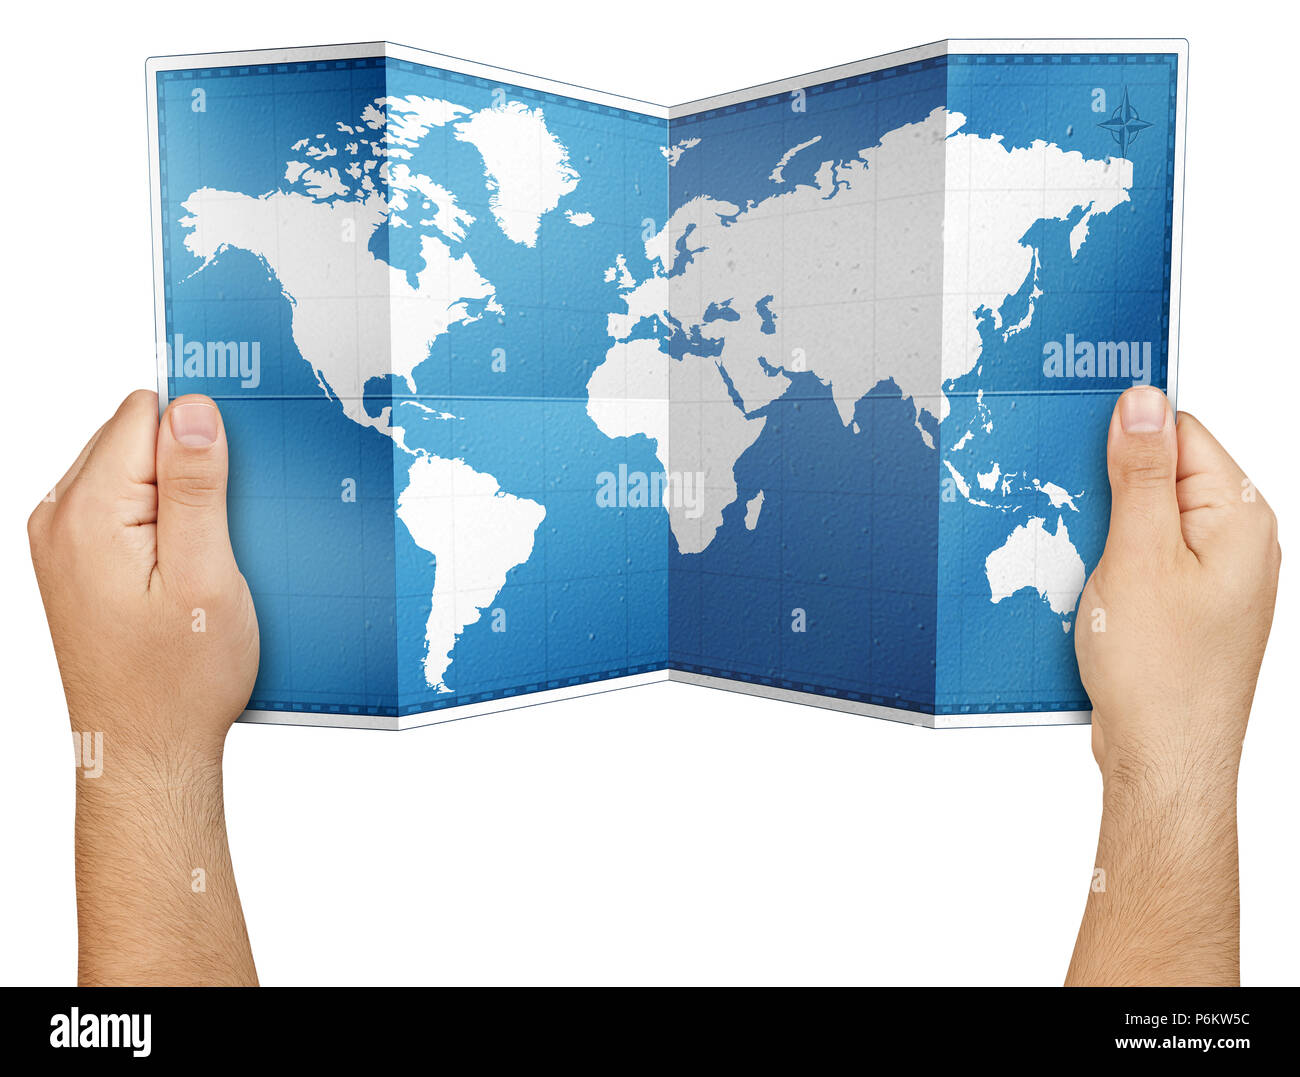 World Map On Hands.Hands Holding Open Folded World Paper Map Isolated Stock Photo